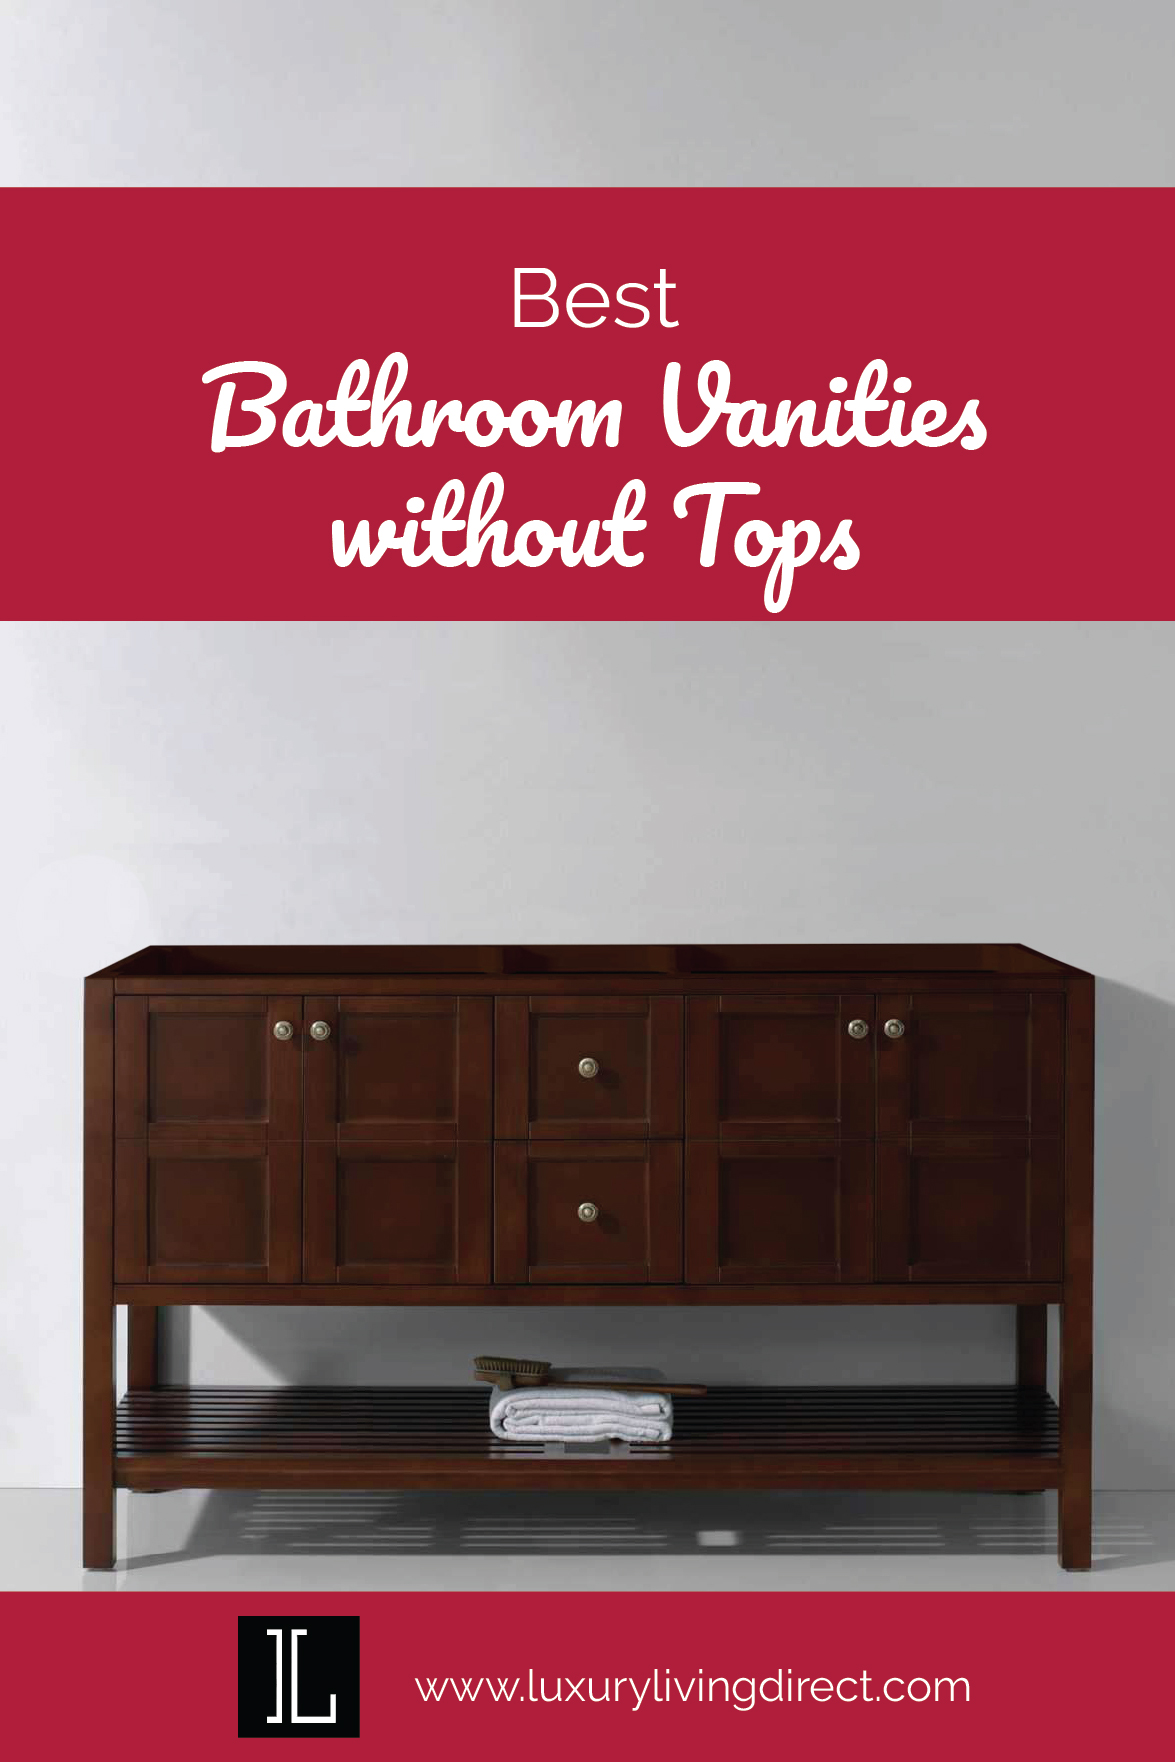 Contemporary Bathroom Vanities Without Tops Decor